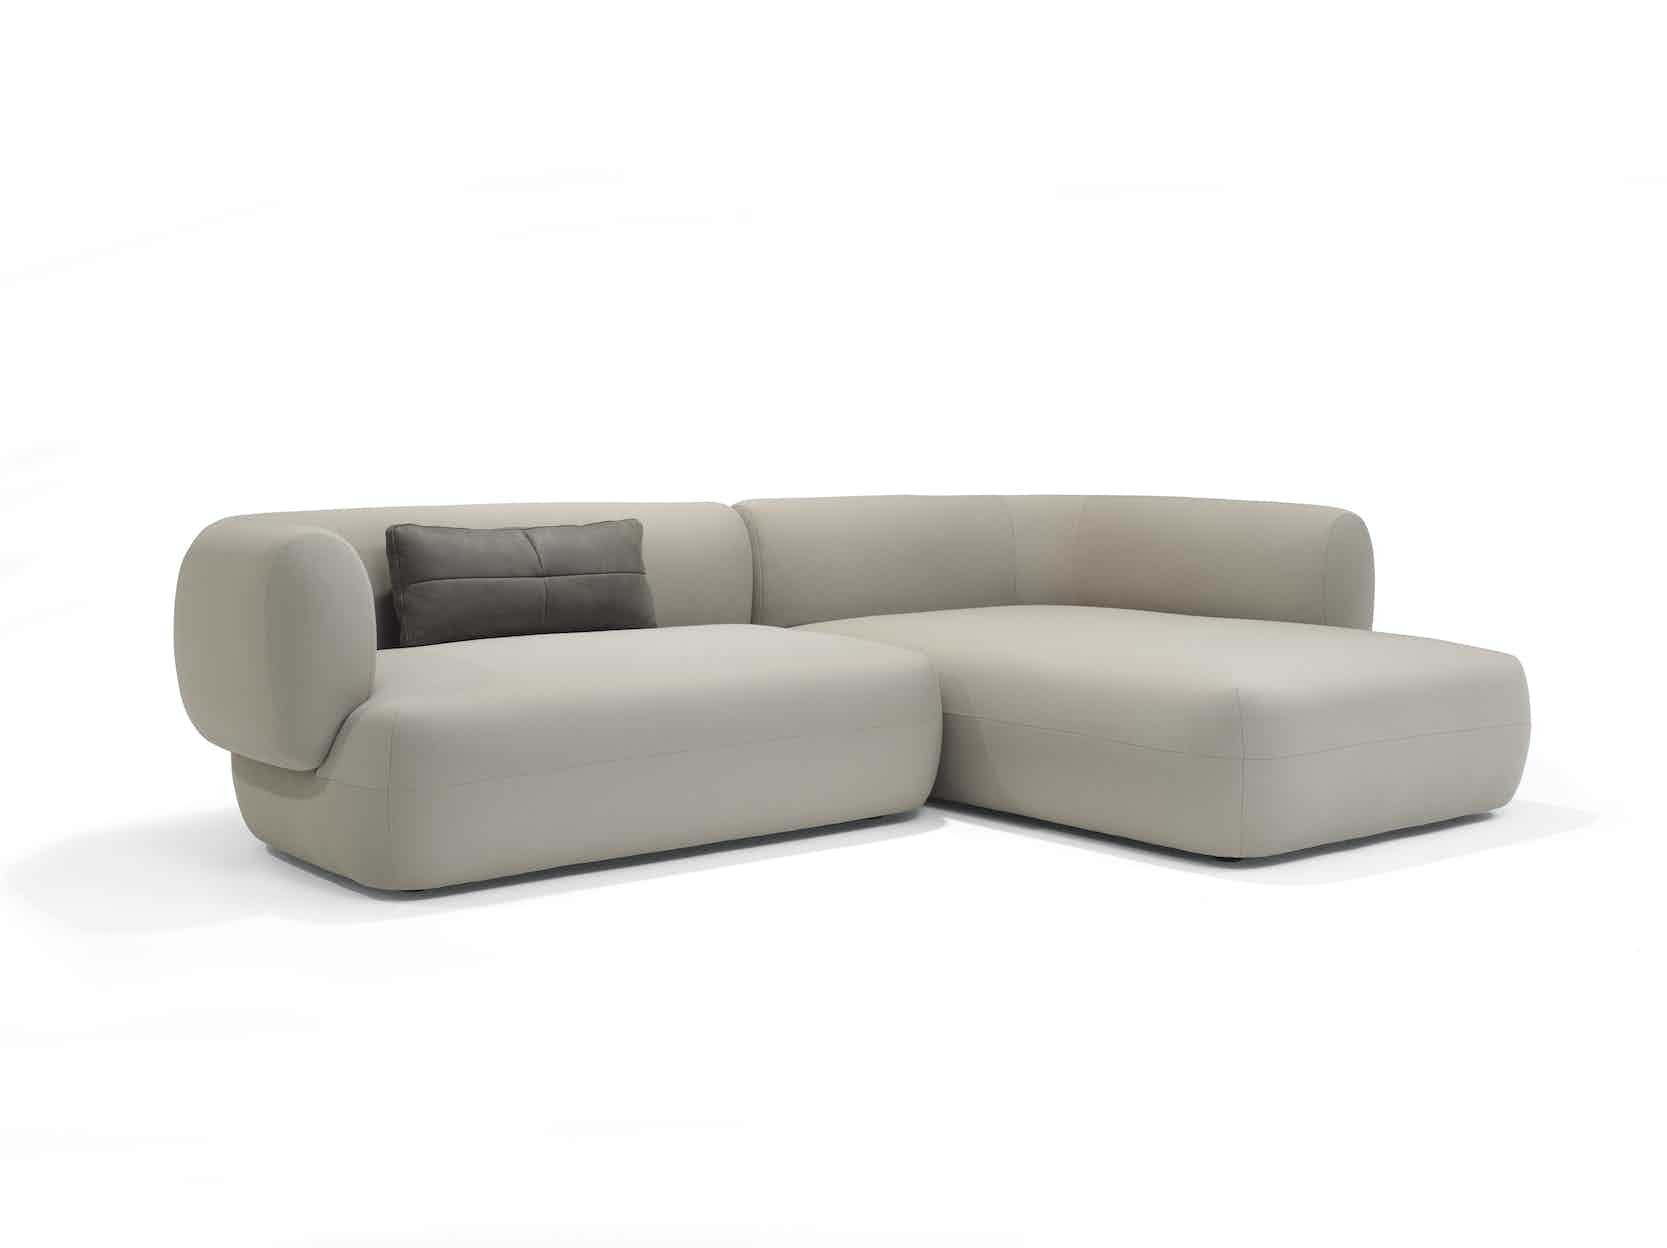 Linteloo-grey-arp-sofa-haute-living